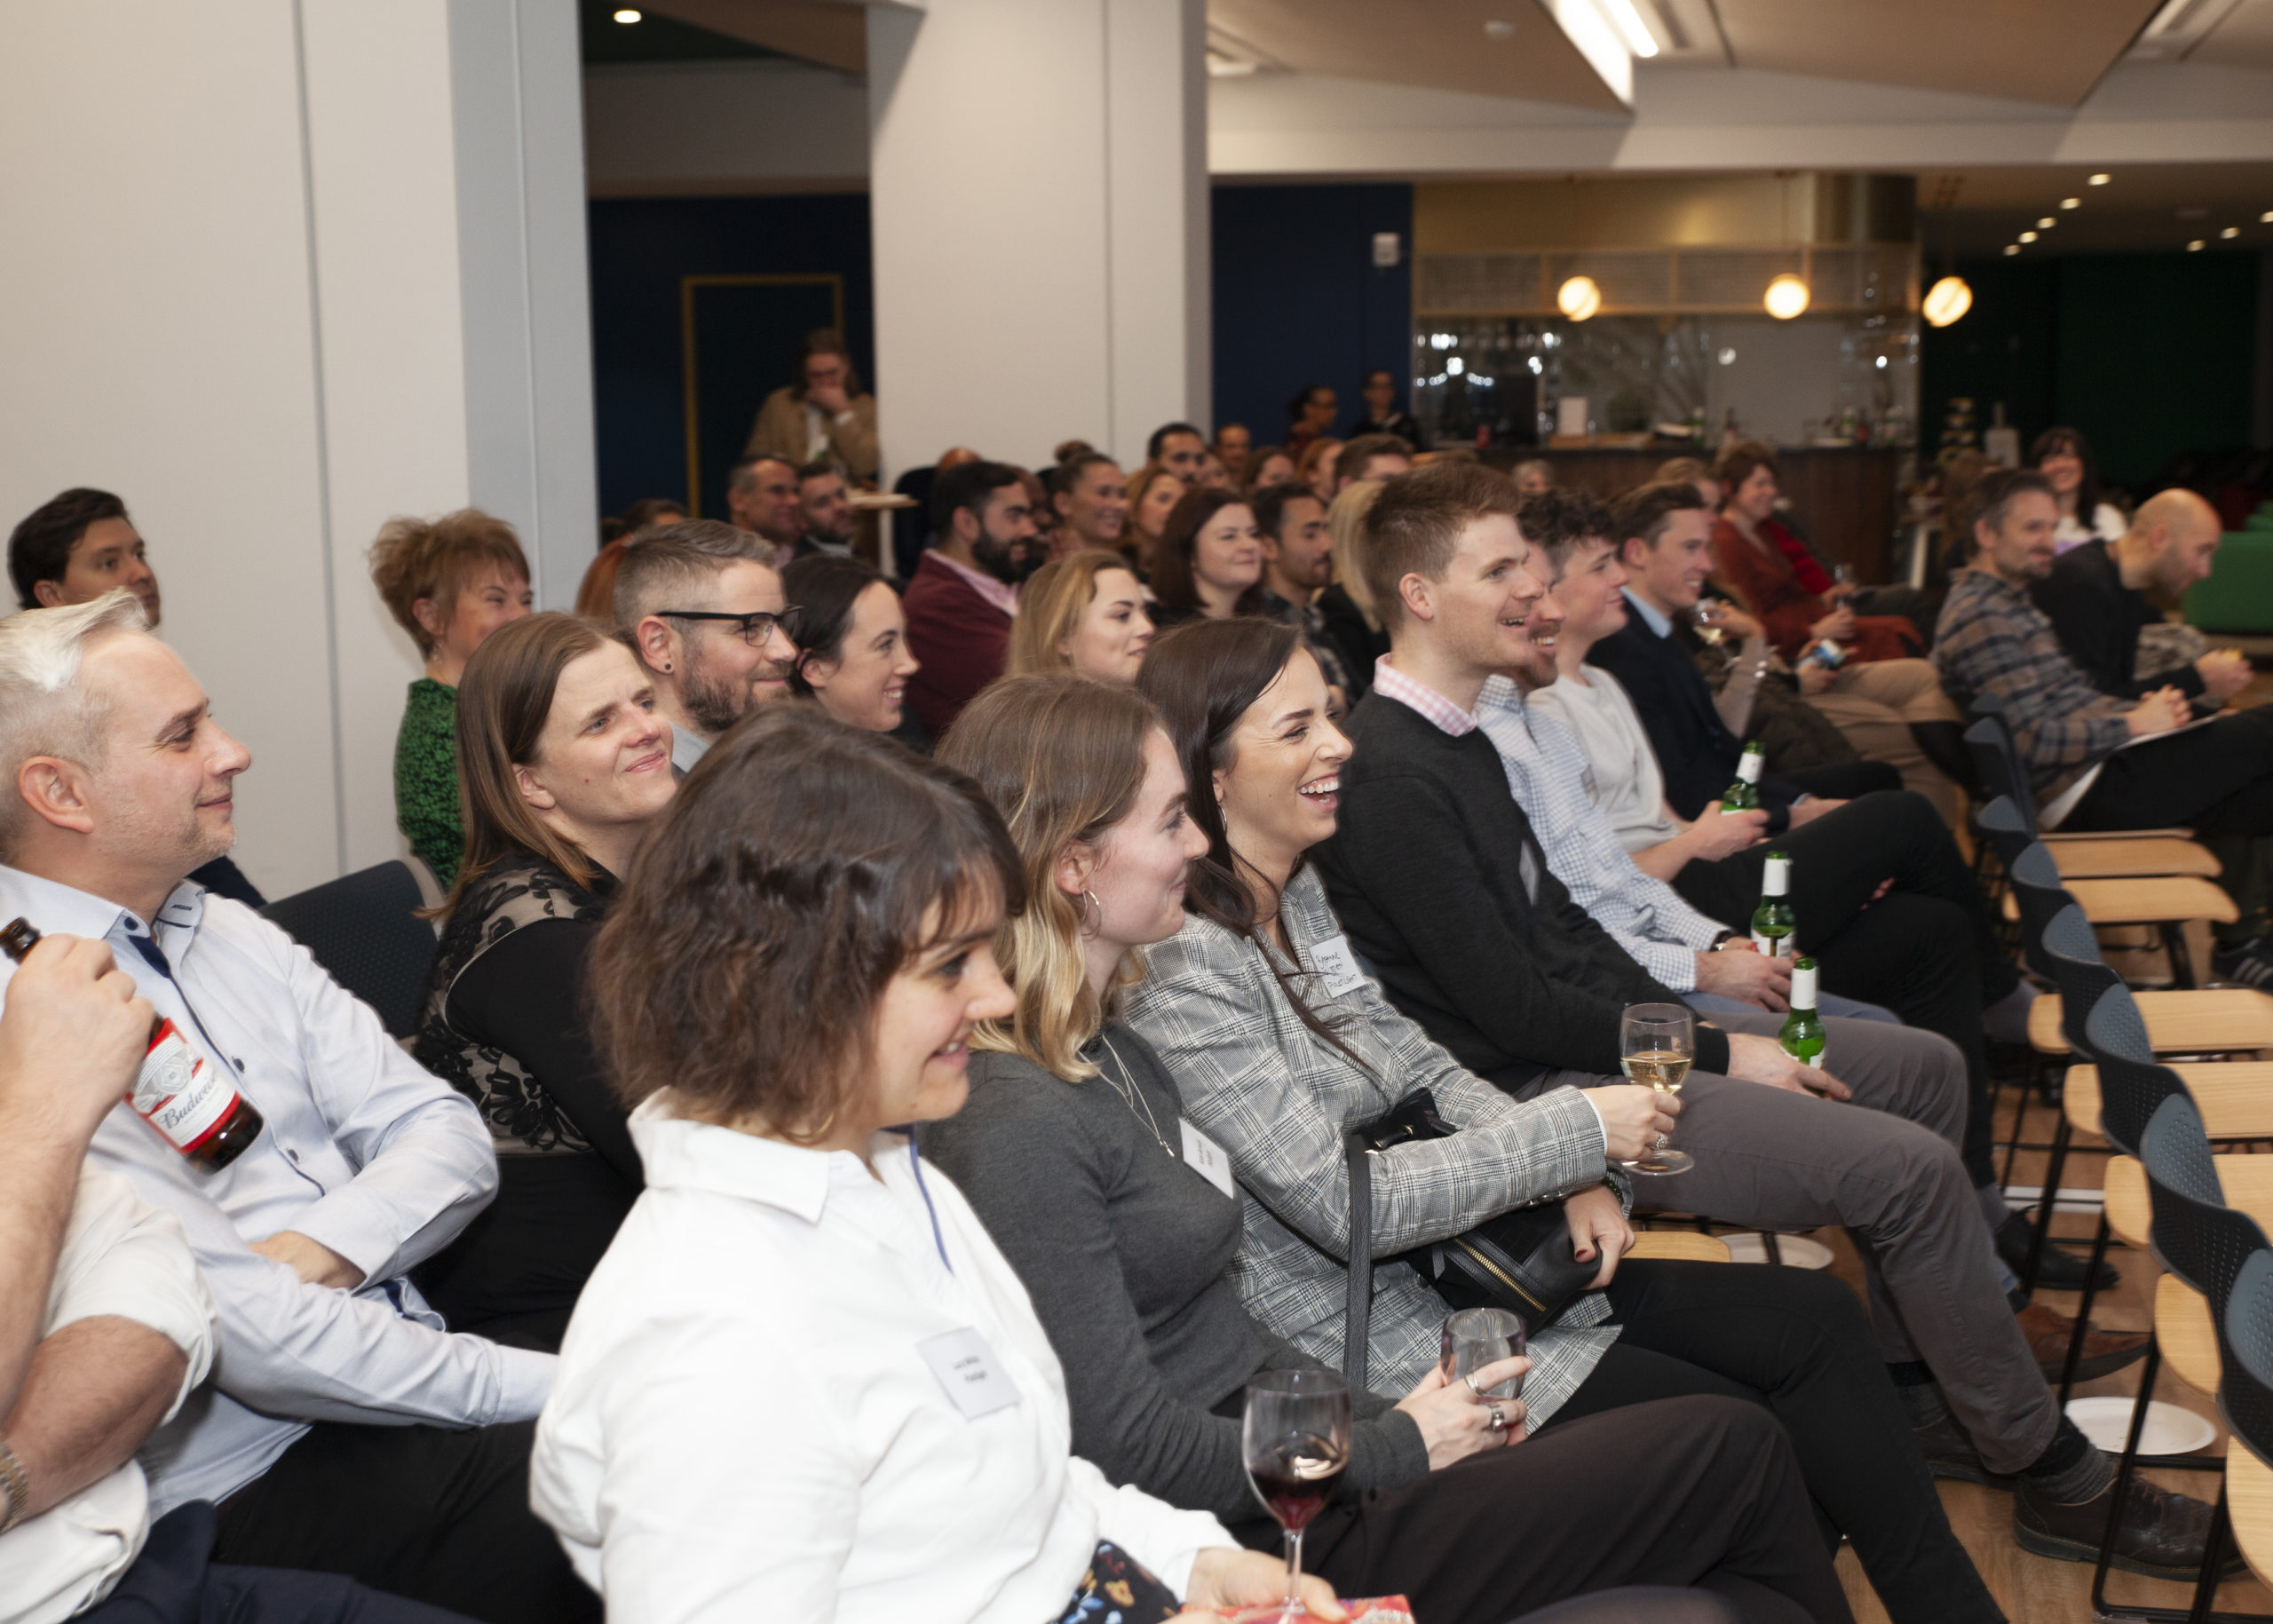 audience enjoys film at Inspire's supporters network launch